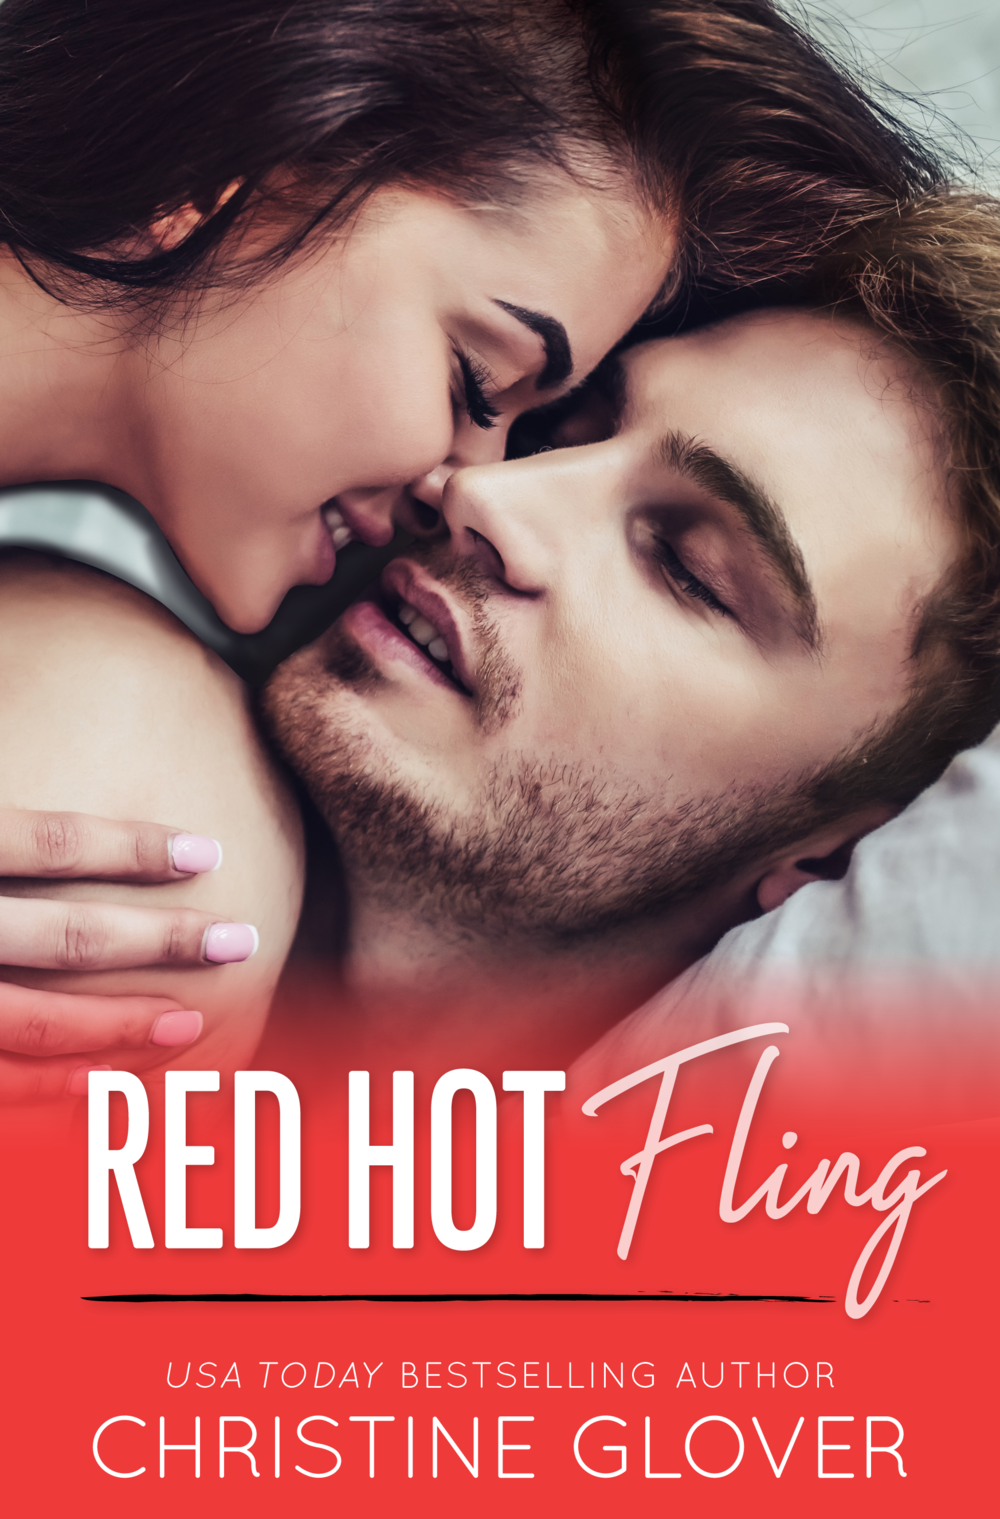 Hot dating red RedHot Dateline